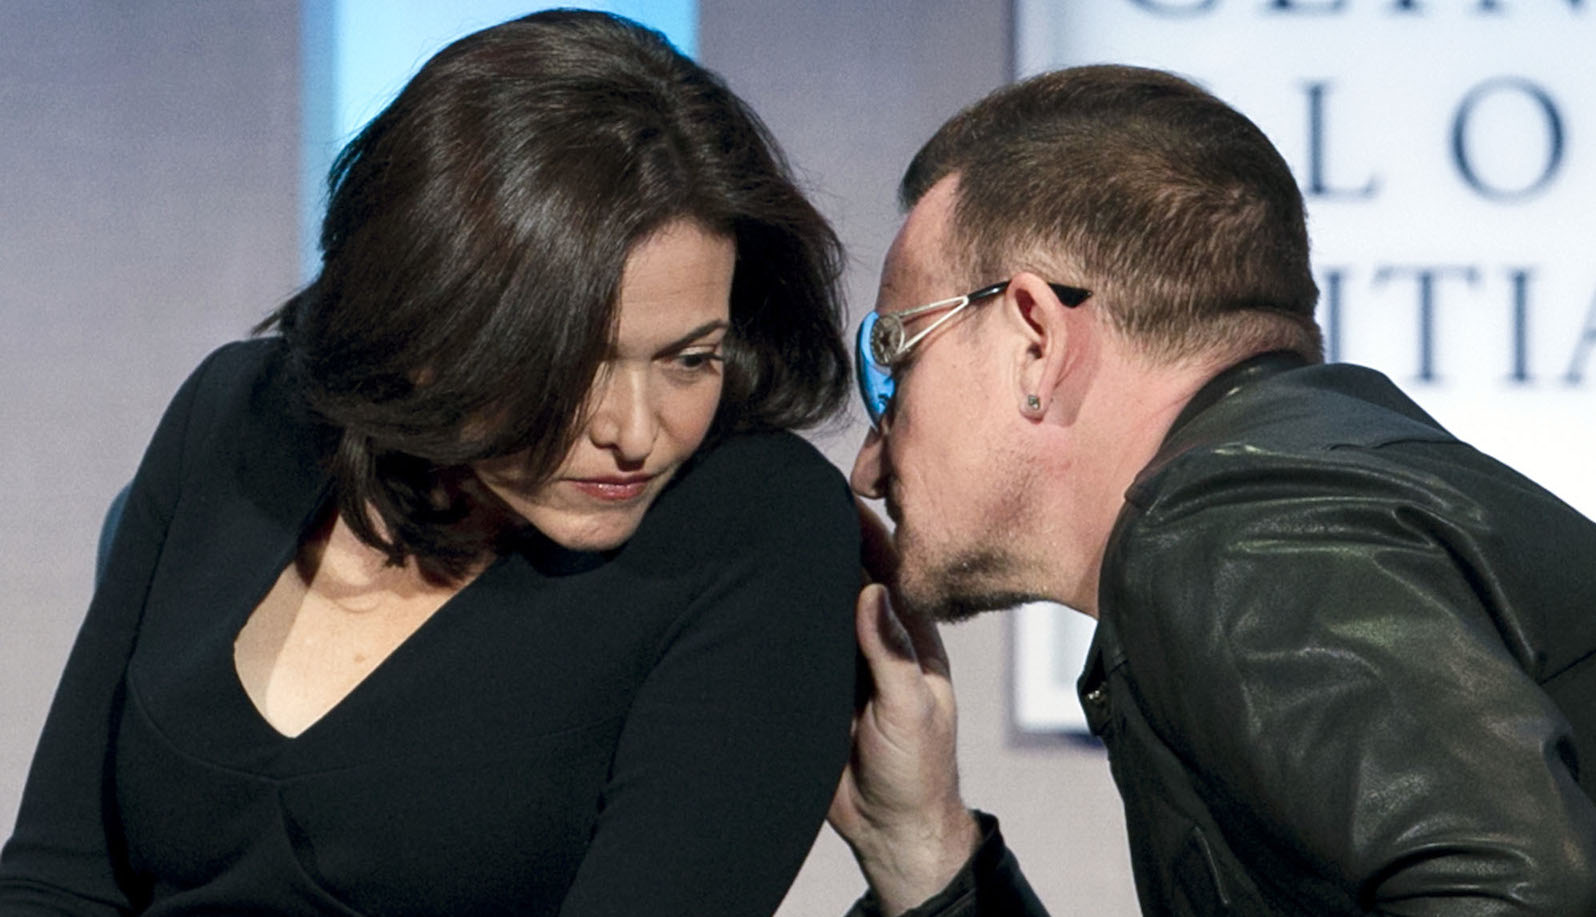 Bono, right, leans in to talk with Sheryl Sandberg, the Chief Operating Officer of Facebook, at the Clinton Global Initiative, Tuesday, Sept. 24, 2013 in New York. (AP Photo/Mark Lennihan)